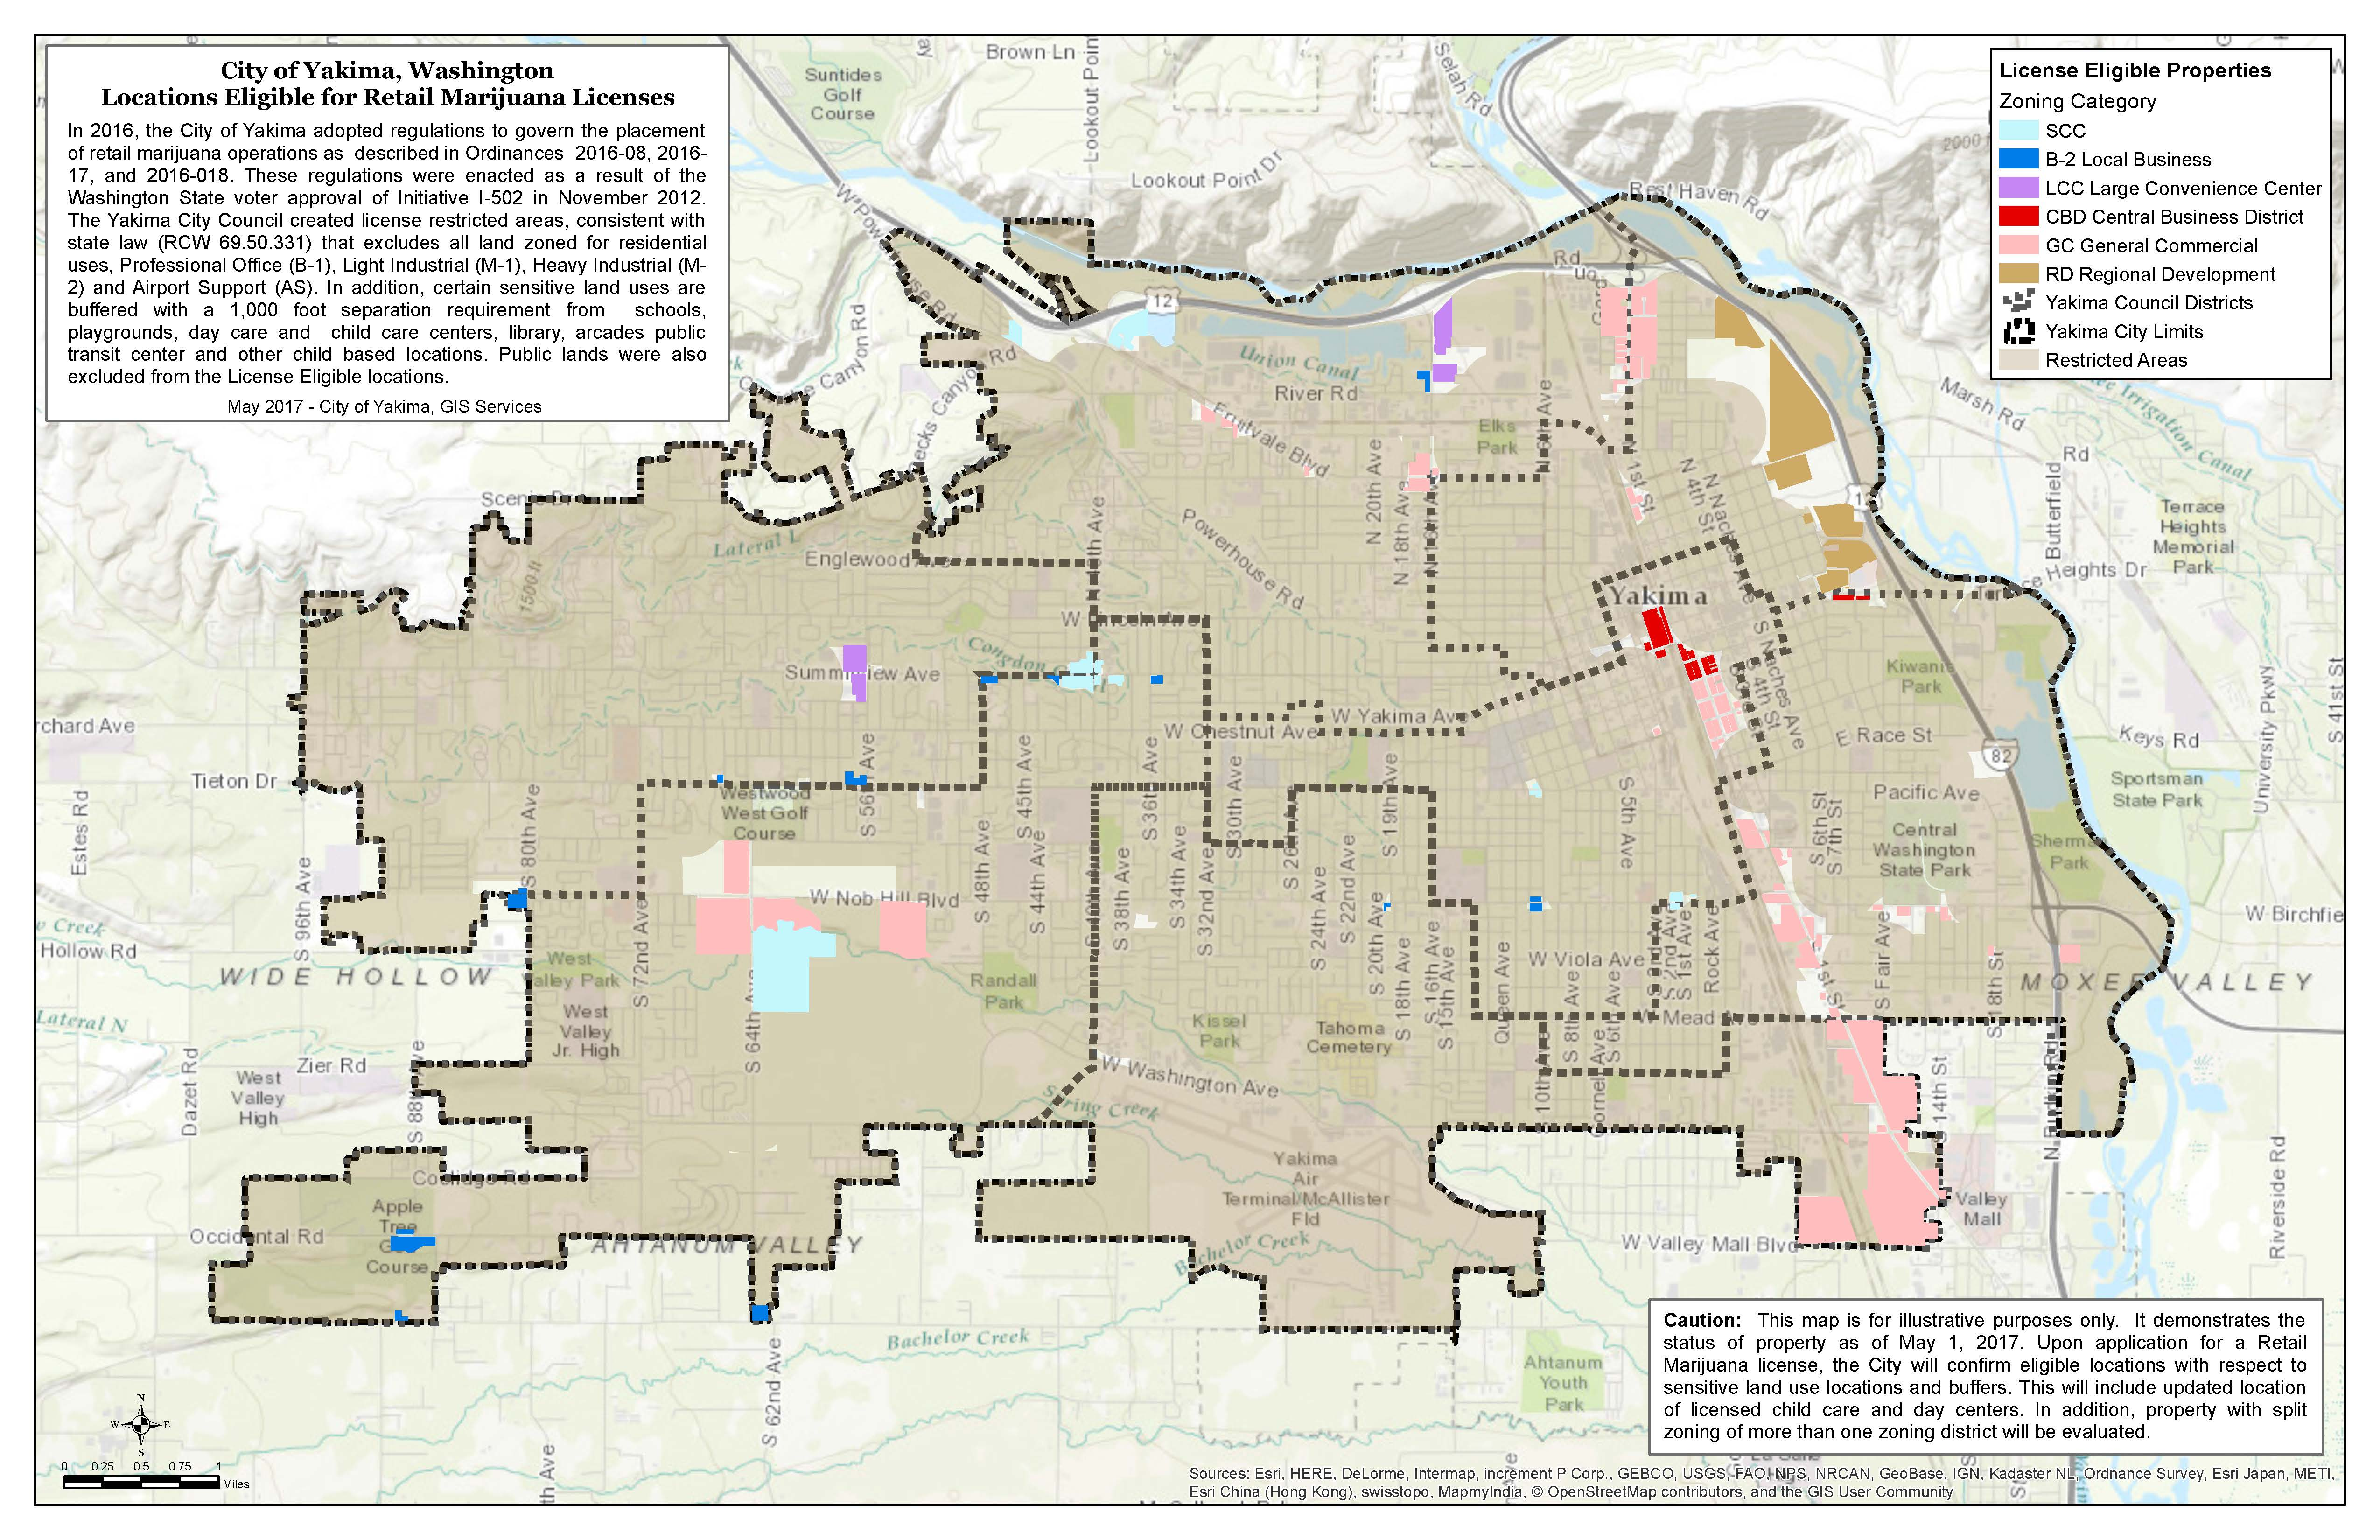 Map of Eligible Properties for Marijuana Retail License Planning